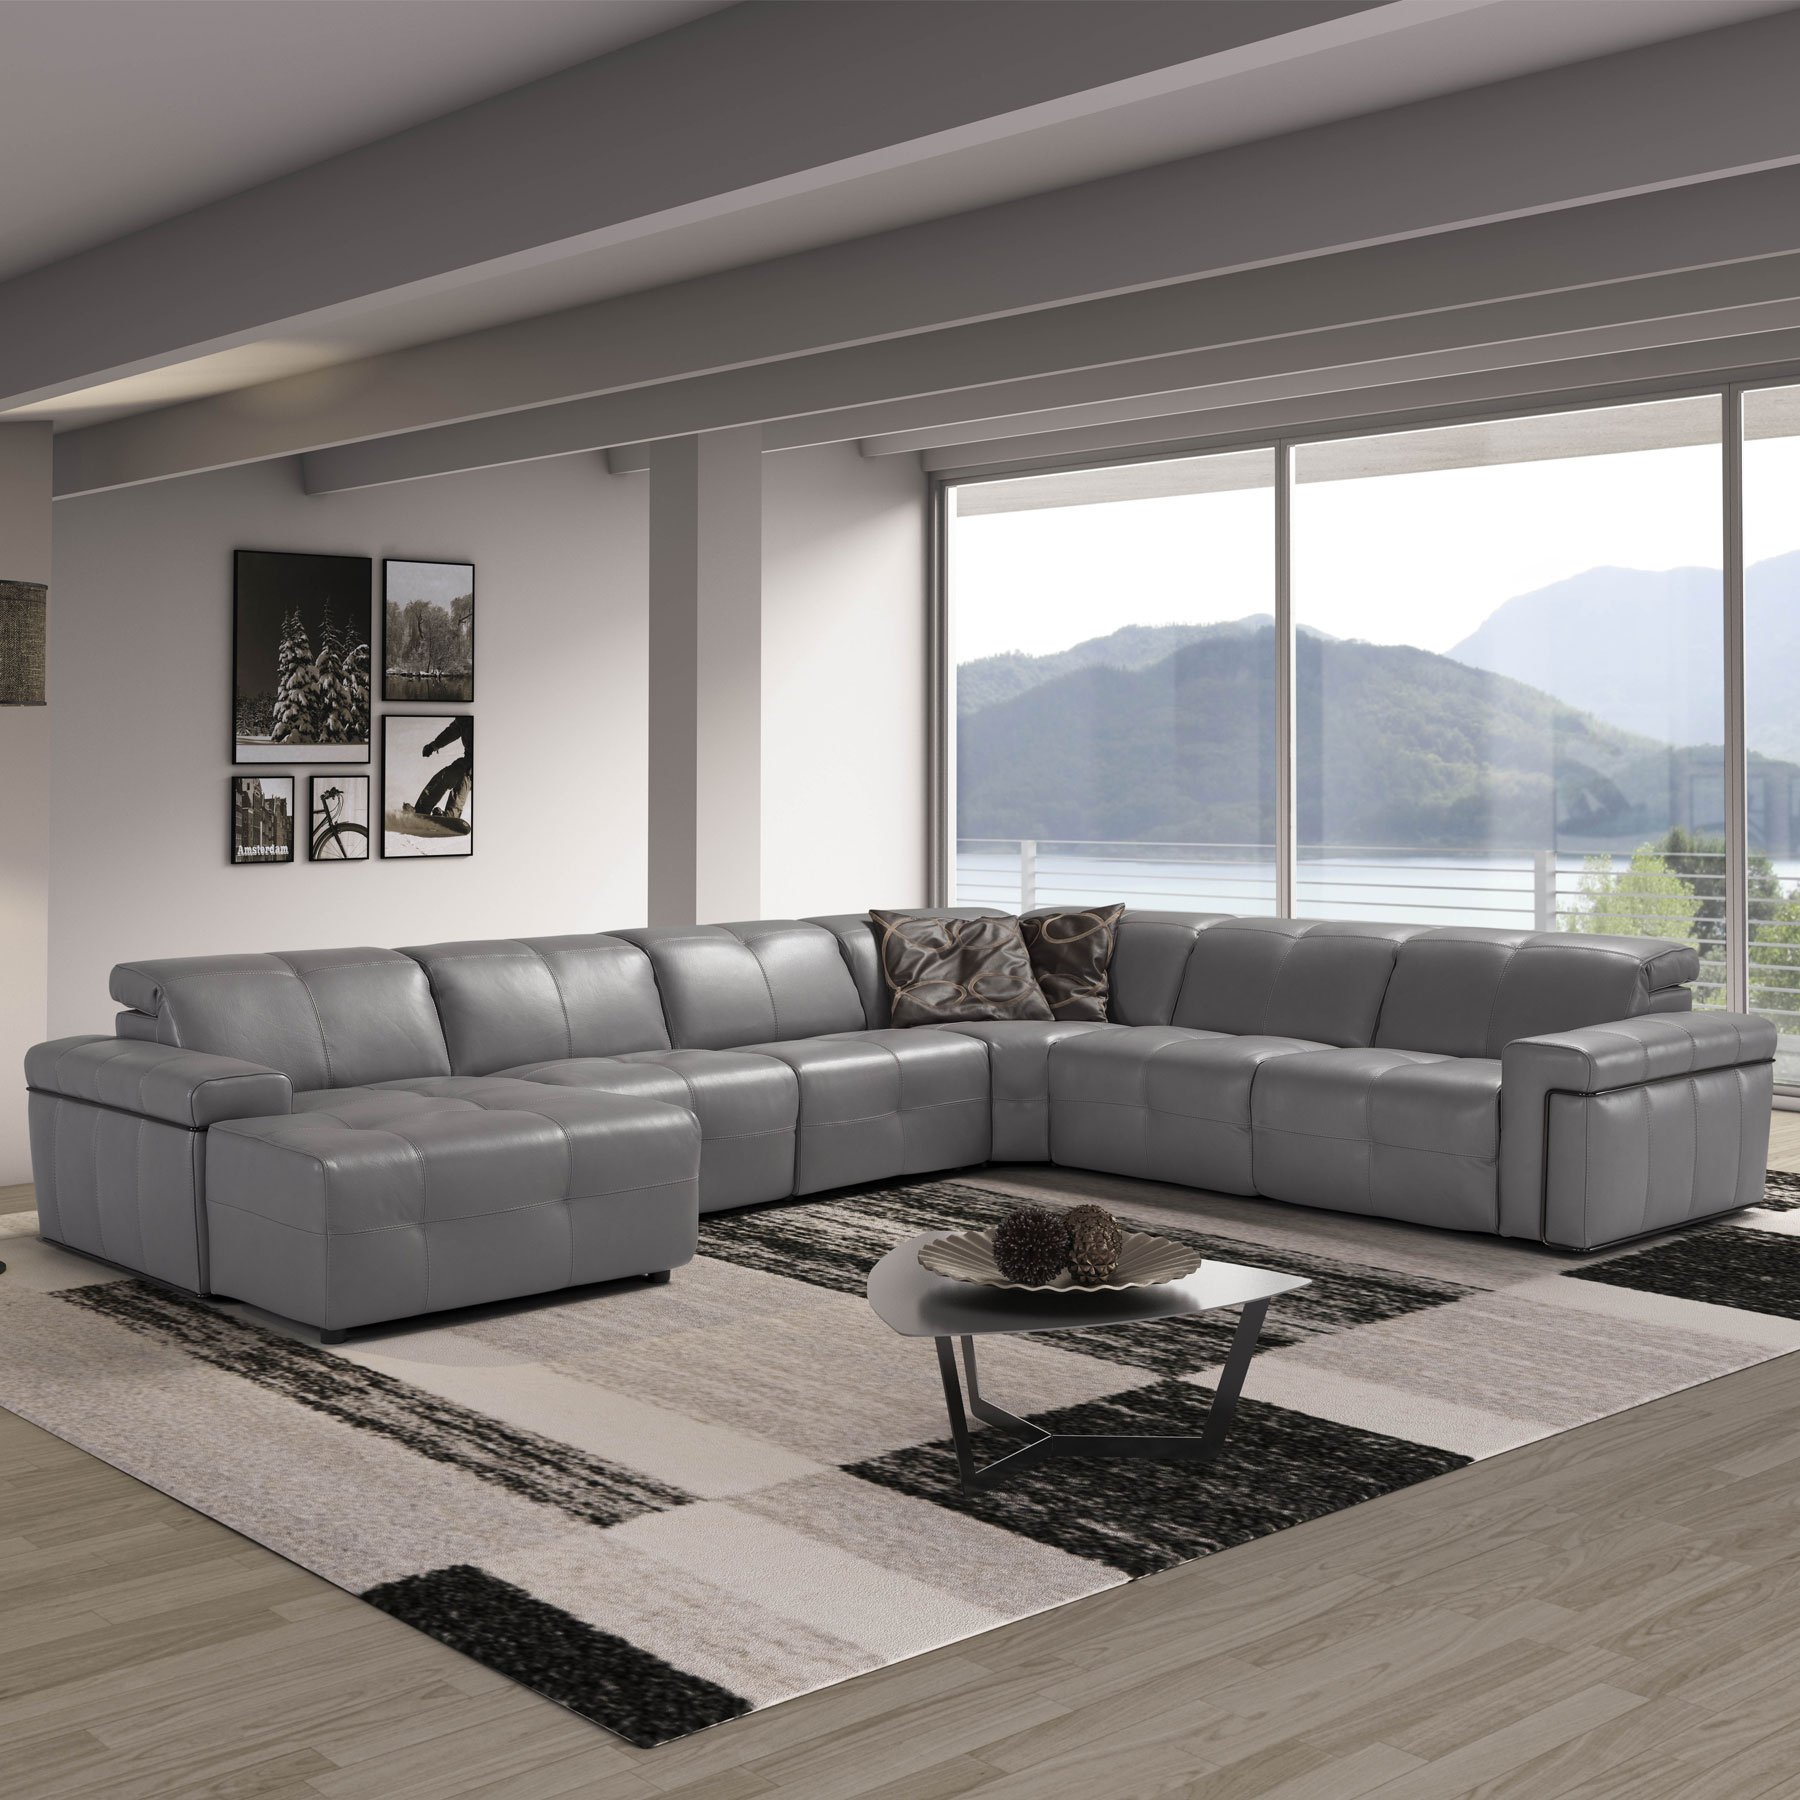 Parma Recliner Corner Group Sofa Collection